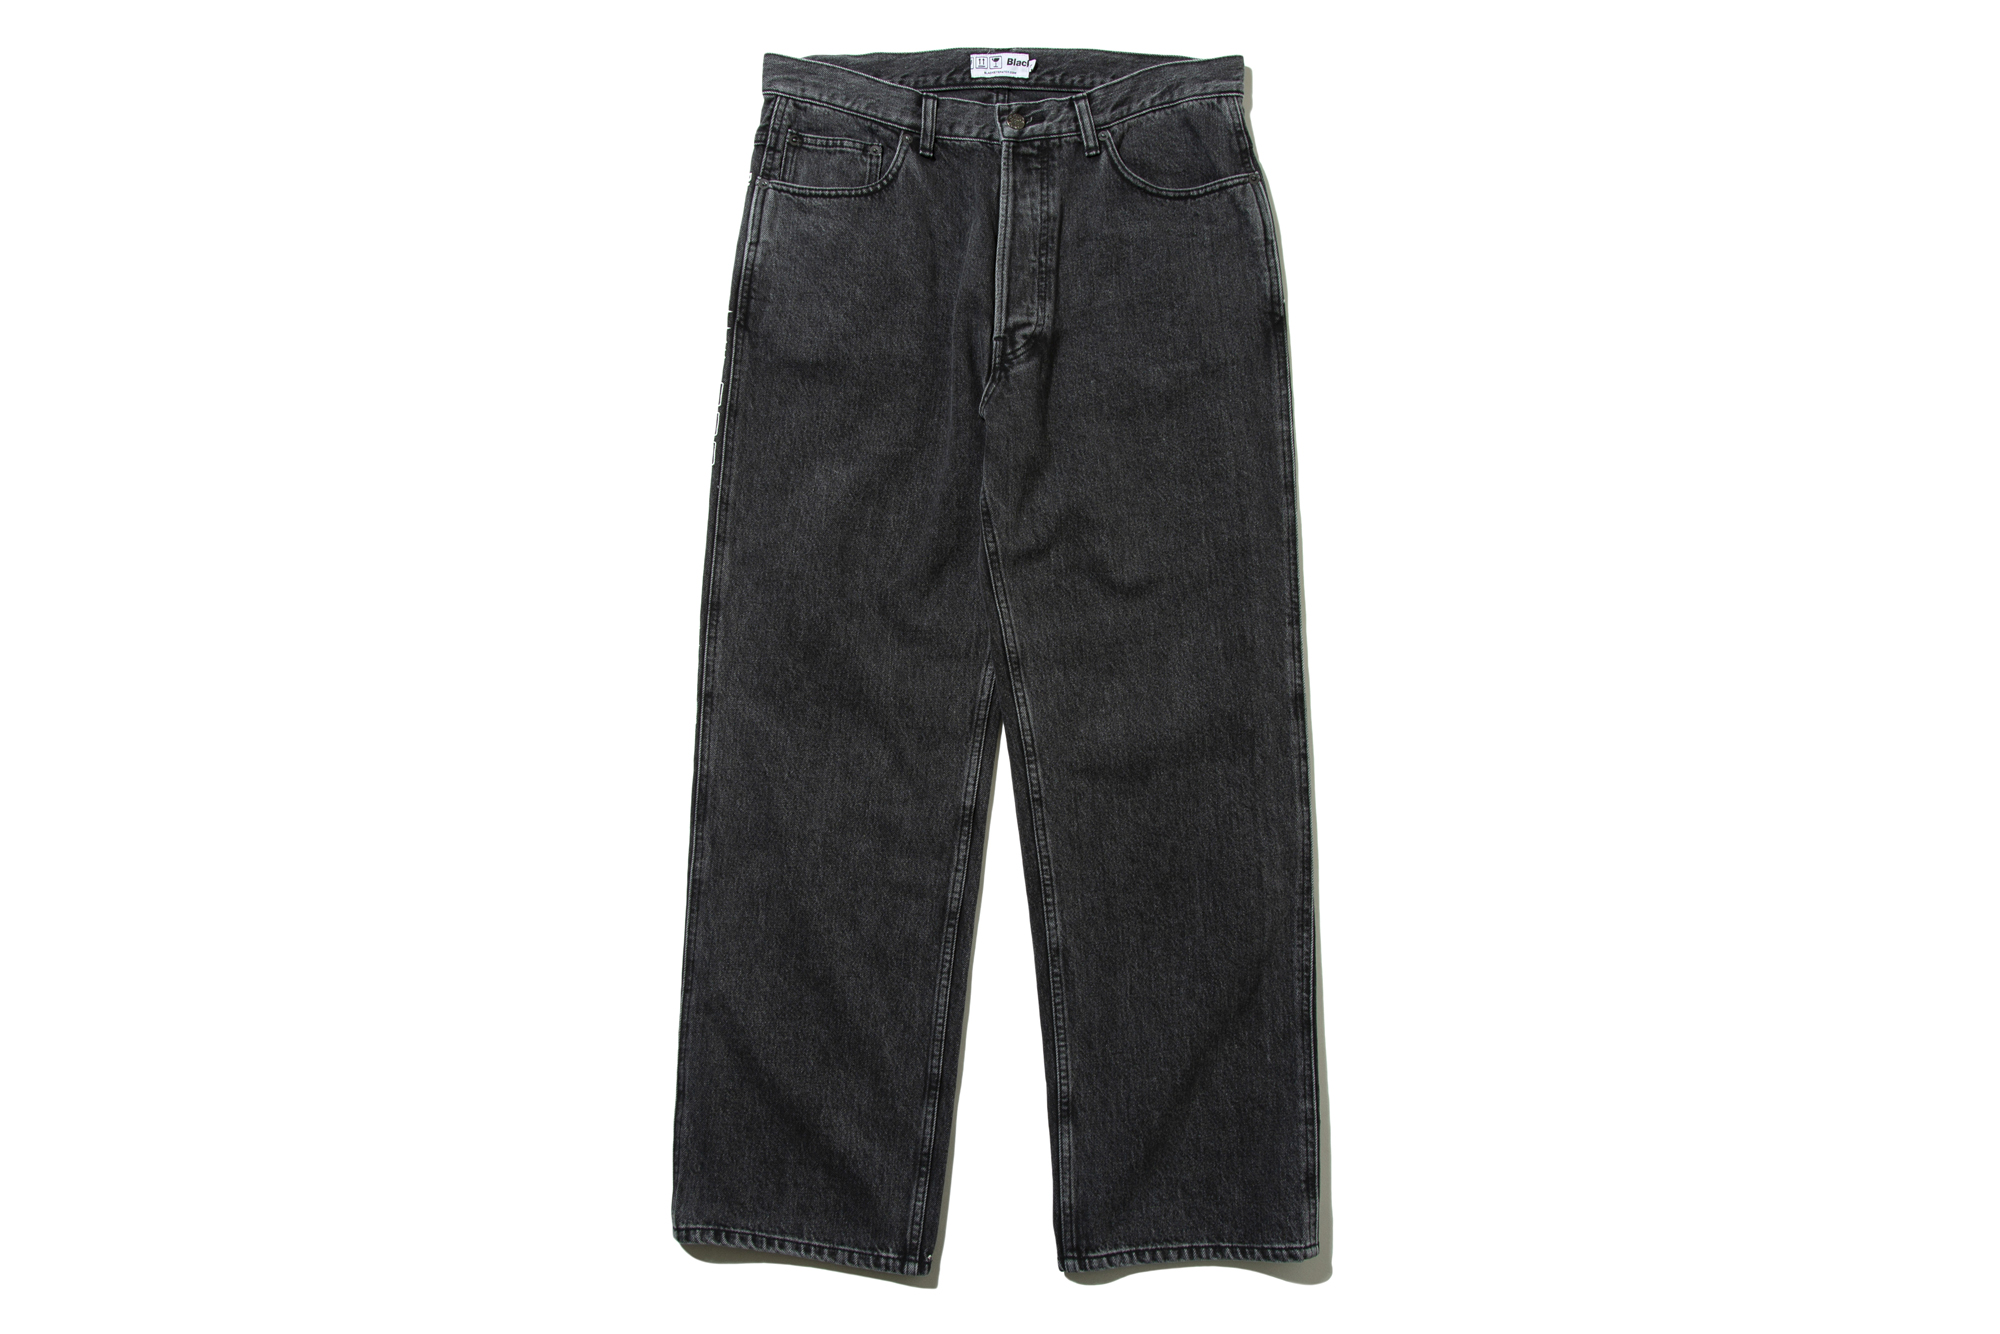 handle-with-care-denim-pants_p2